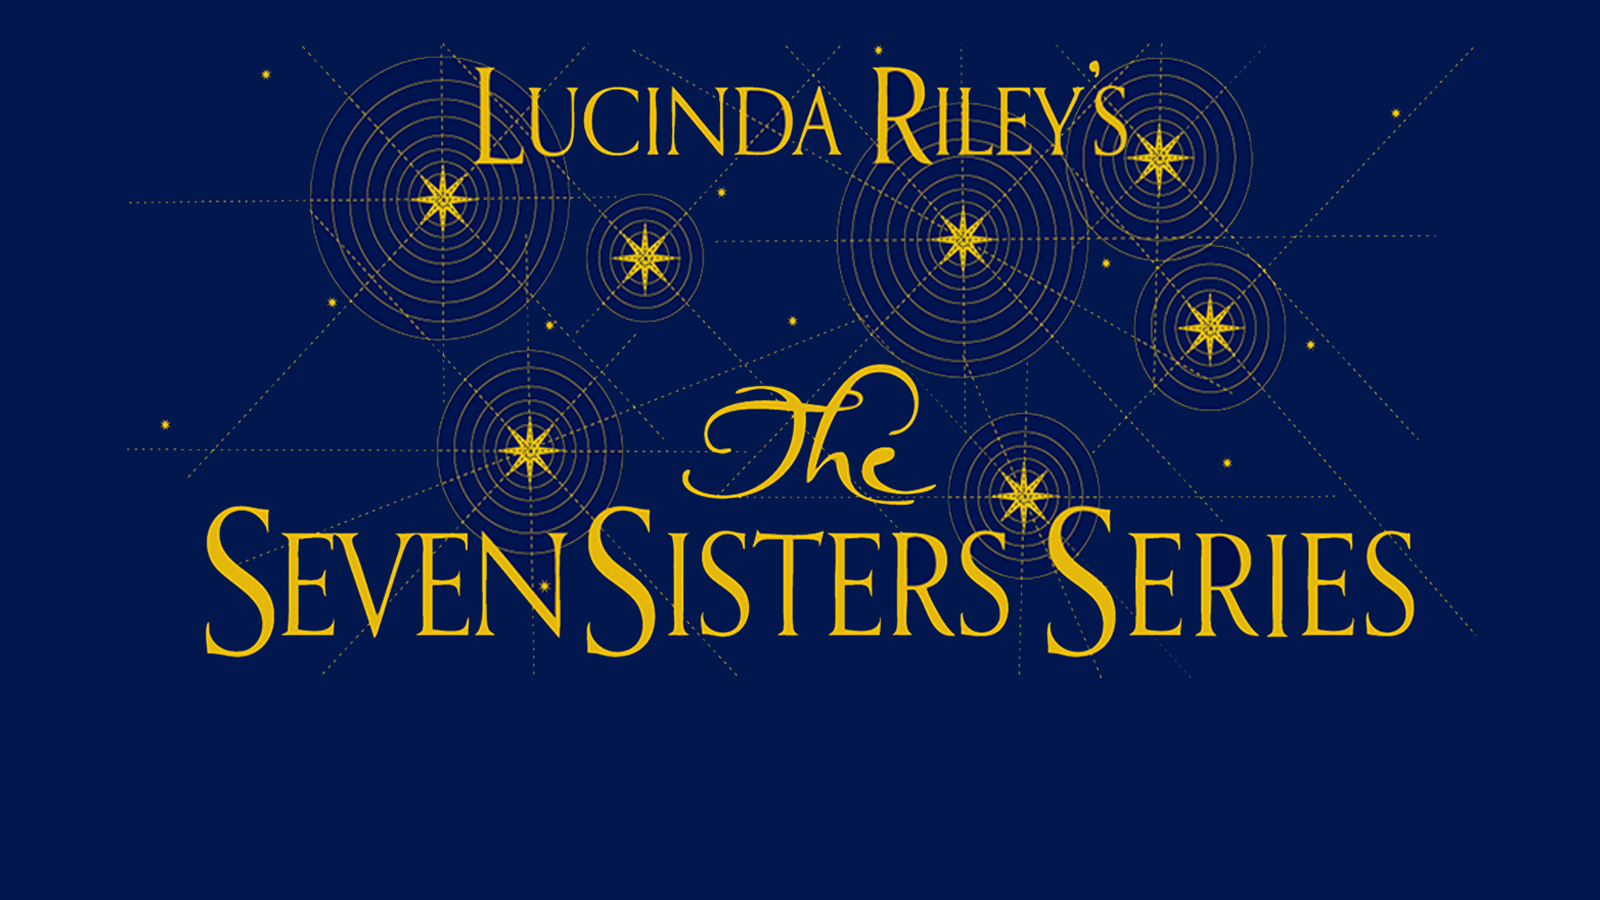 Lucinda Riley's The Seven Sisters series